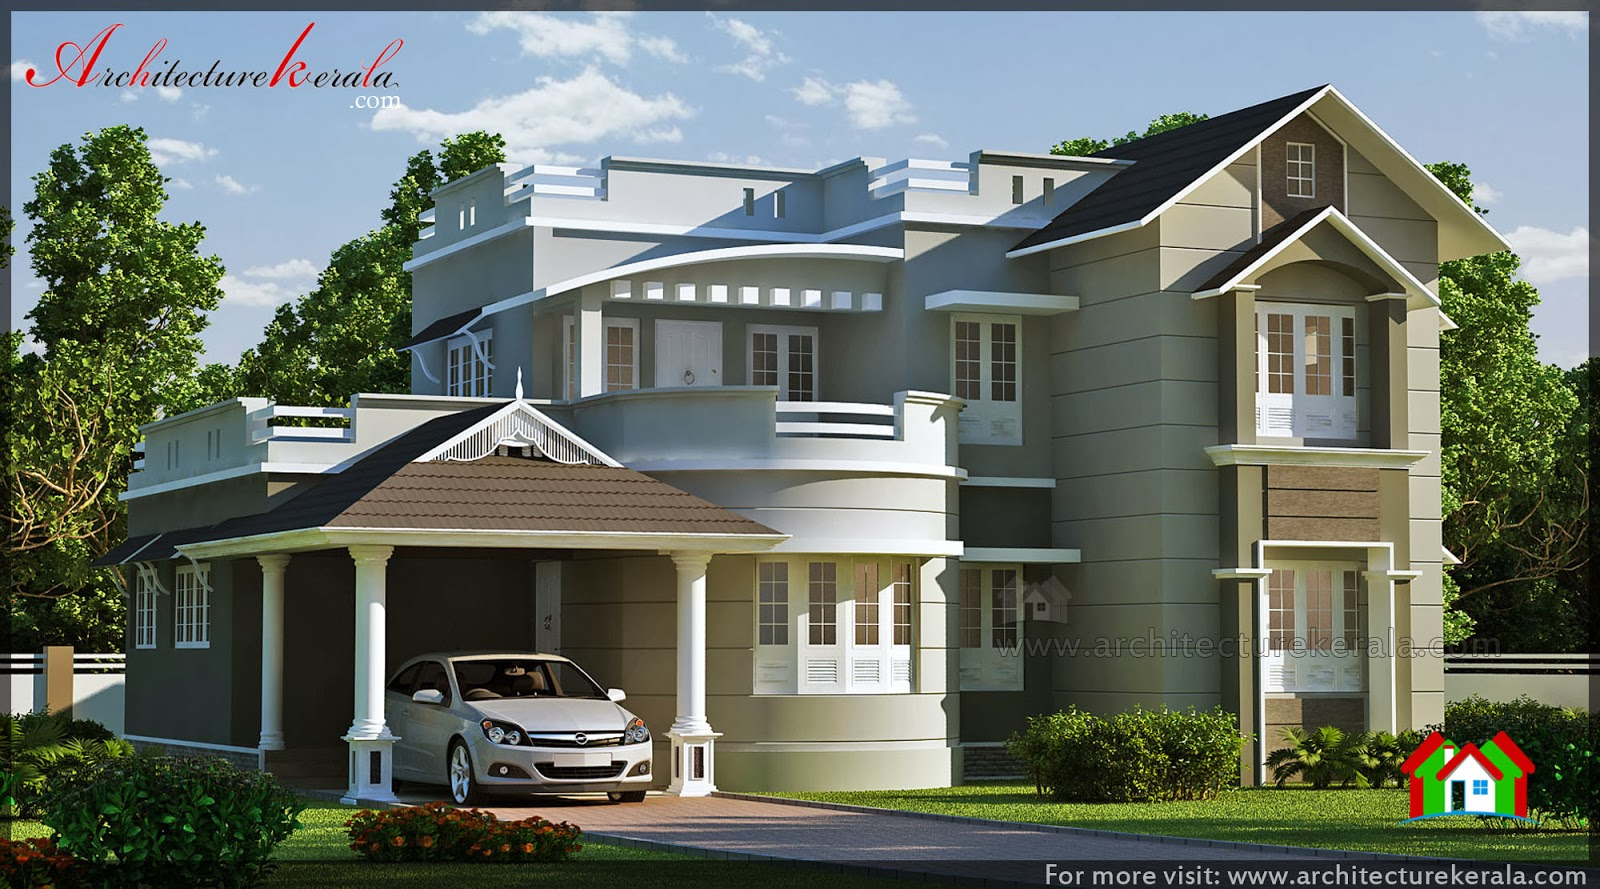 Good looking house design architecture kerala for Looking for an architect to design a house